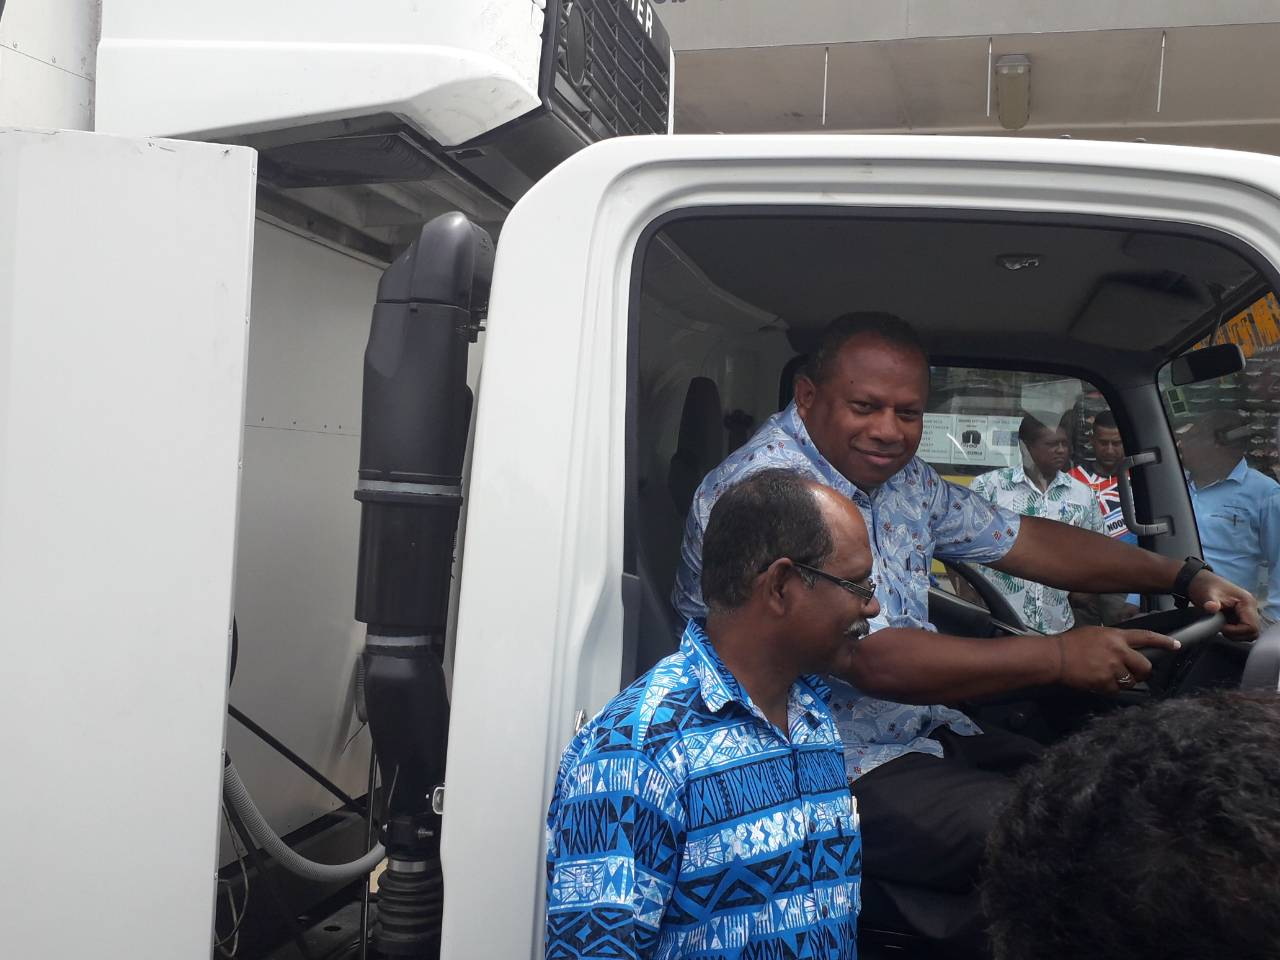 Minister for Agriculture, Rural and Maritime Development and National Disaster Management and Meteorological Services Inia Seruiratu inside the refrigerator truck with Madhwan Reddy standing. Photo: DEPTFO Ne